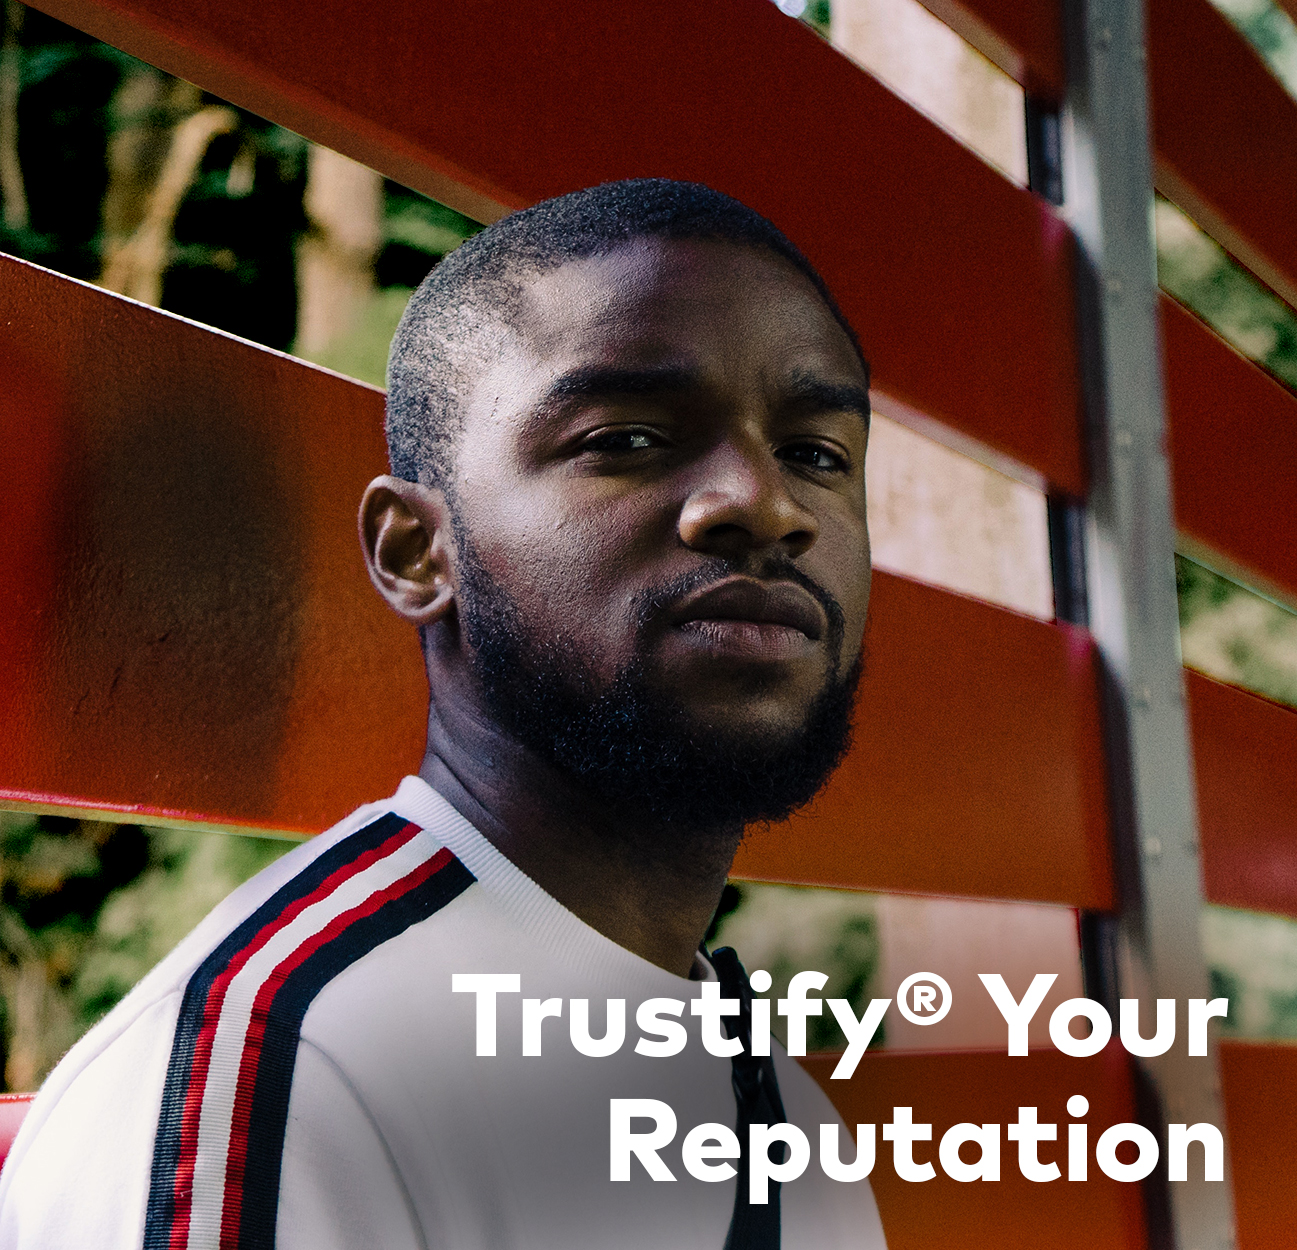 7_Mext_Consulting_Firm_Melbourne_Trust_Trustify_Your_Reputation.jpg